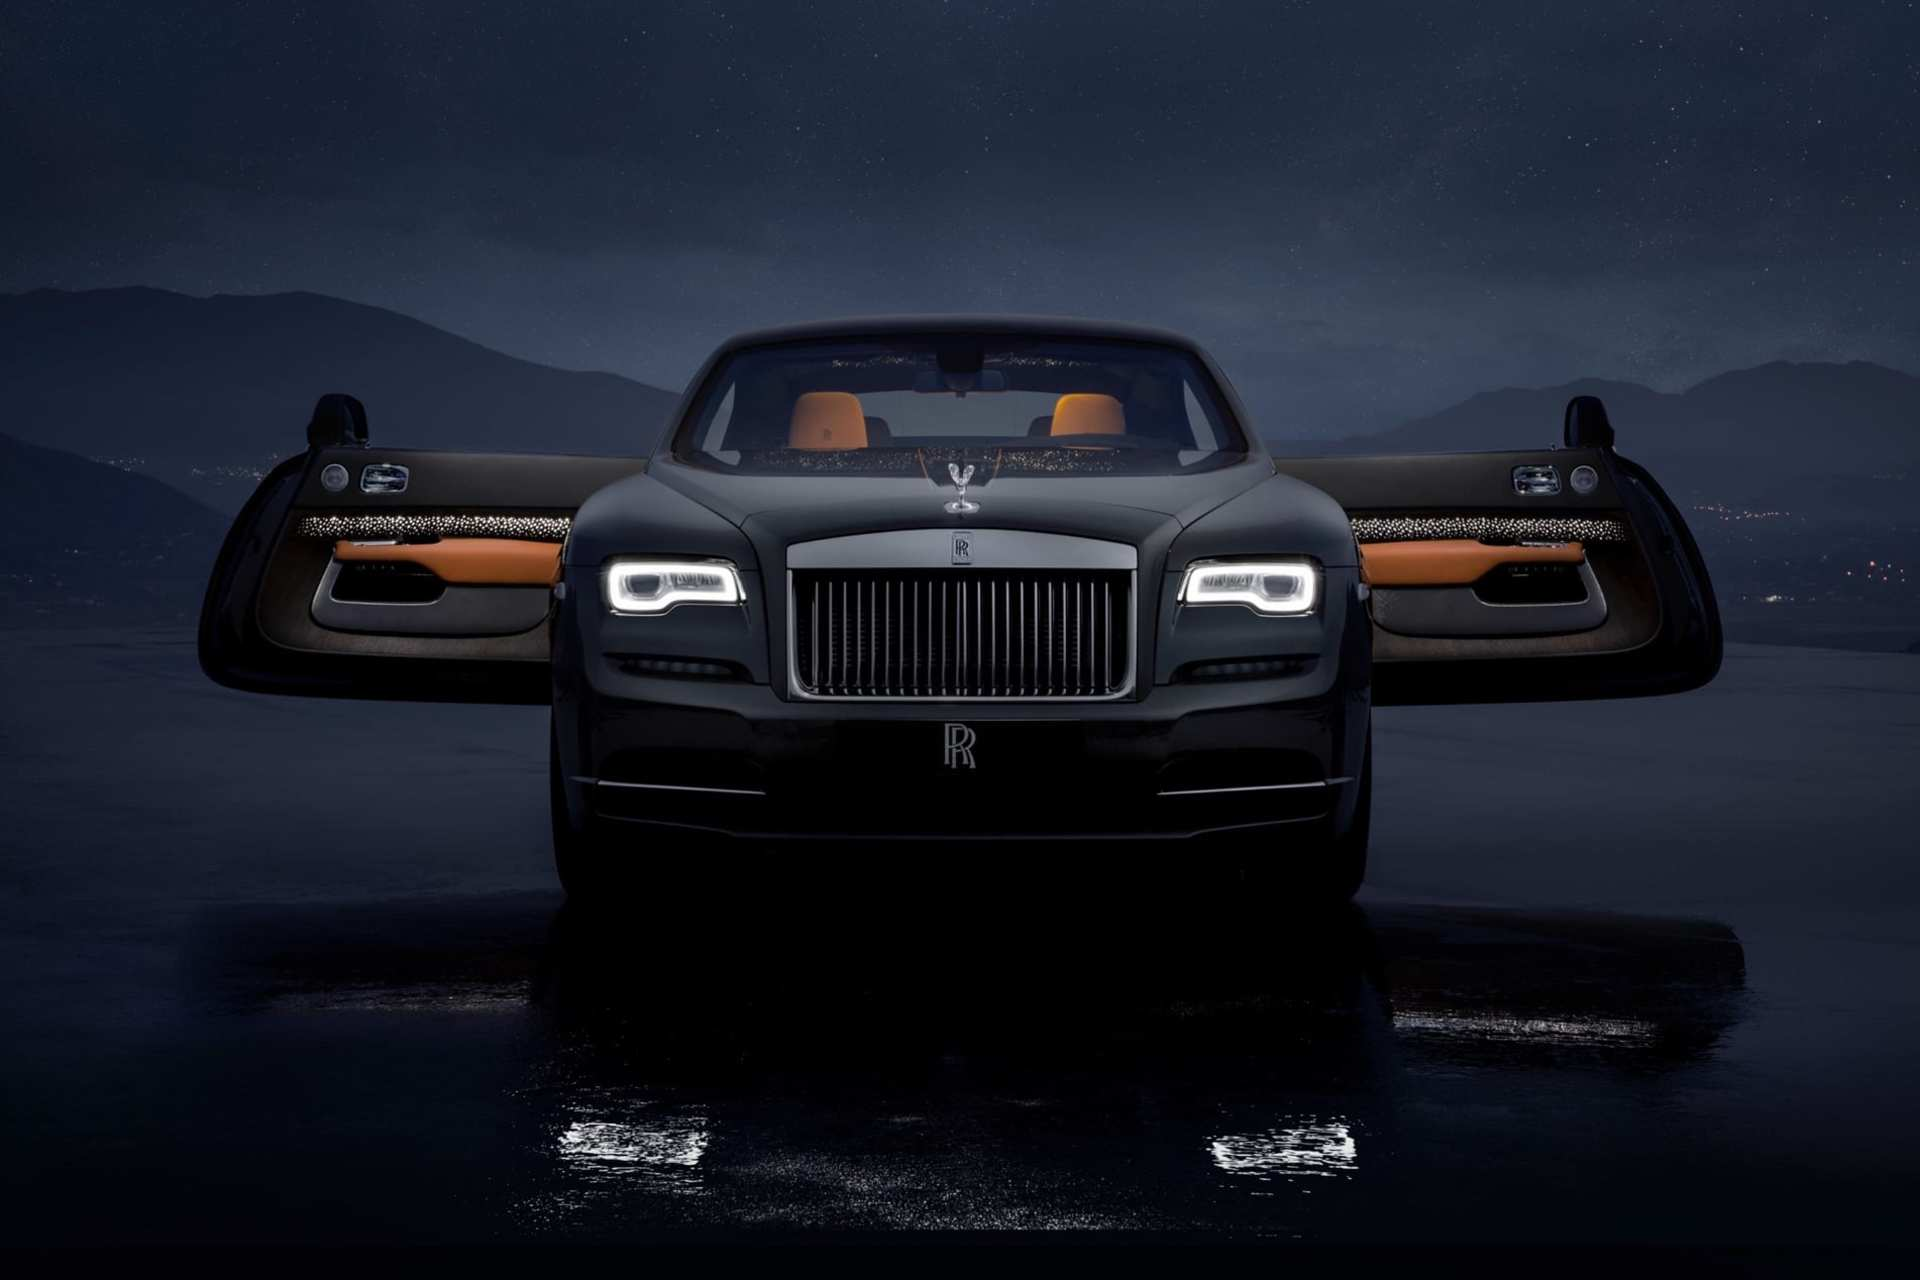 Rolls-Royce Wraith front view, car doors open, dark shot with headlights on, Luminary collection